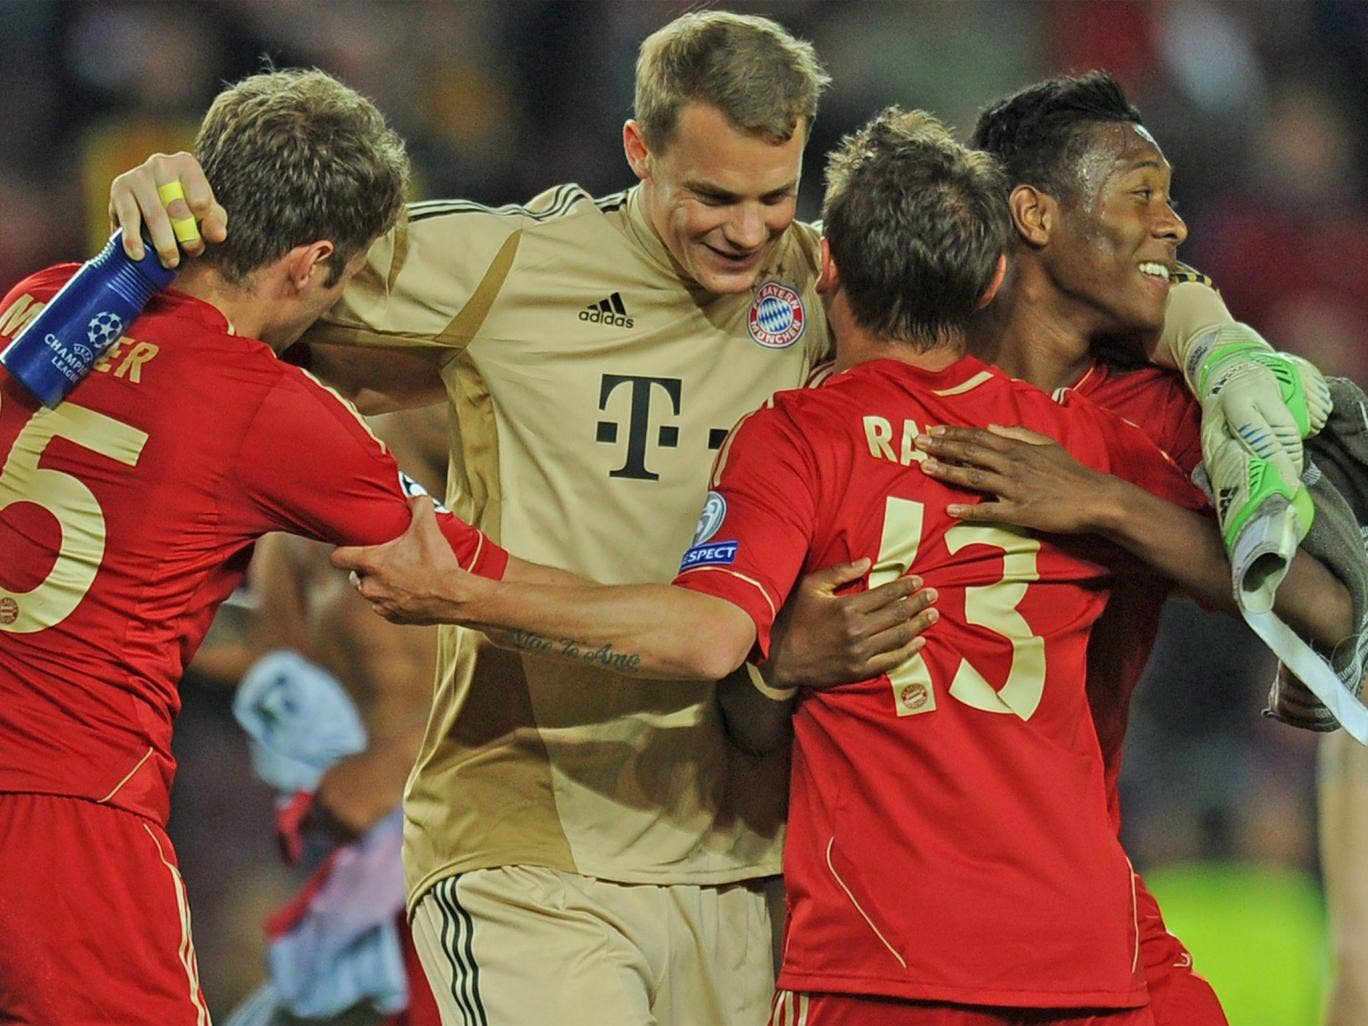 Bayern's success this season is setting the bar very high for Pep Guardiola